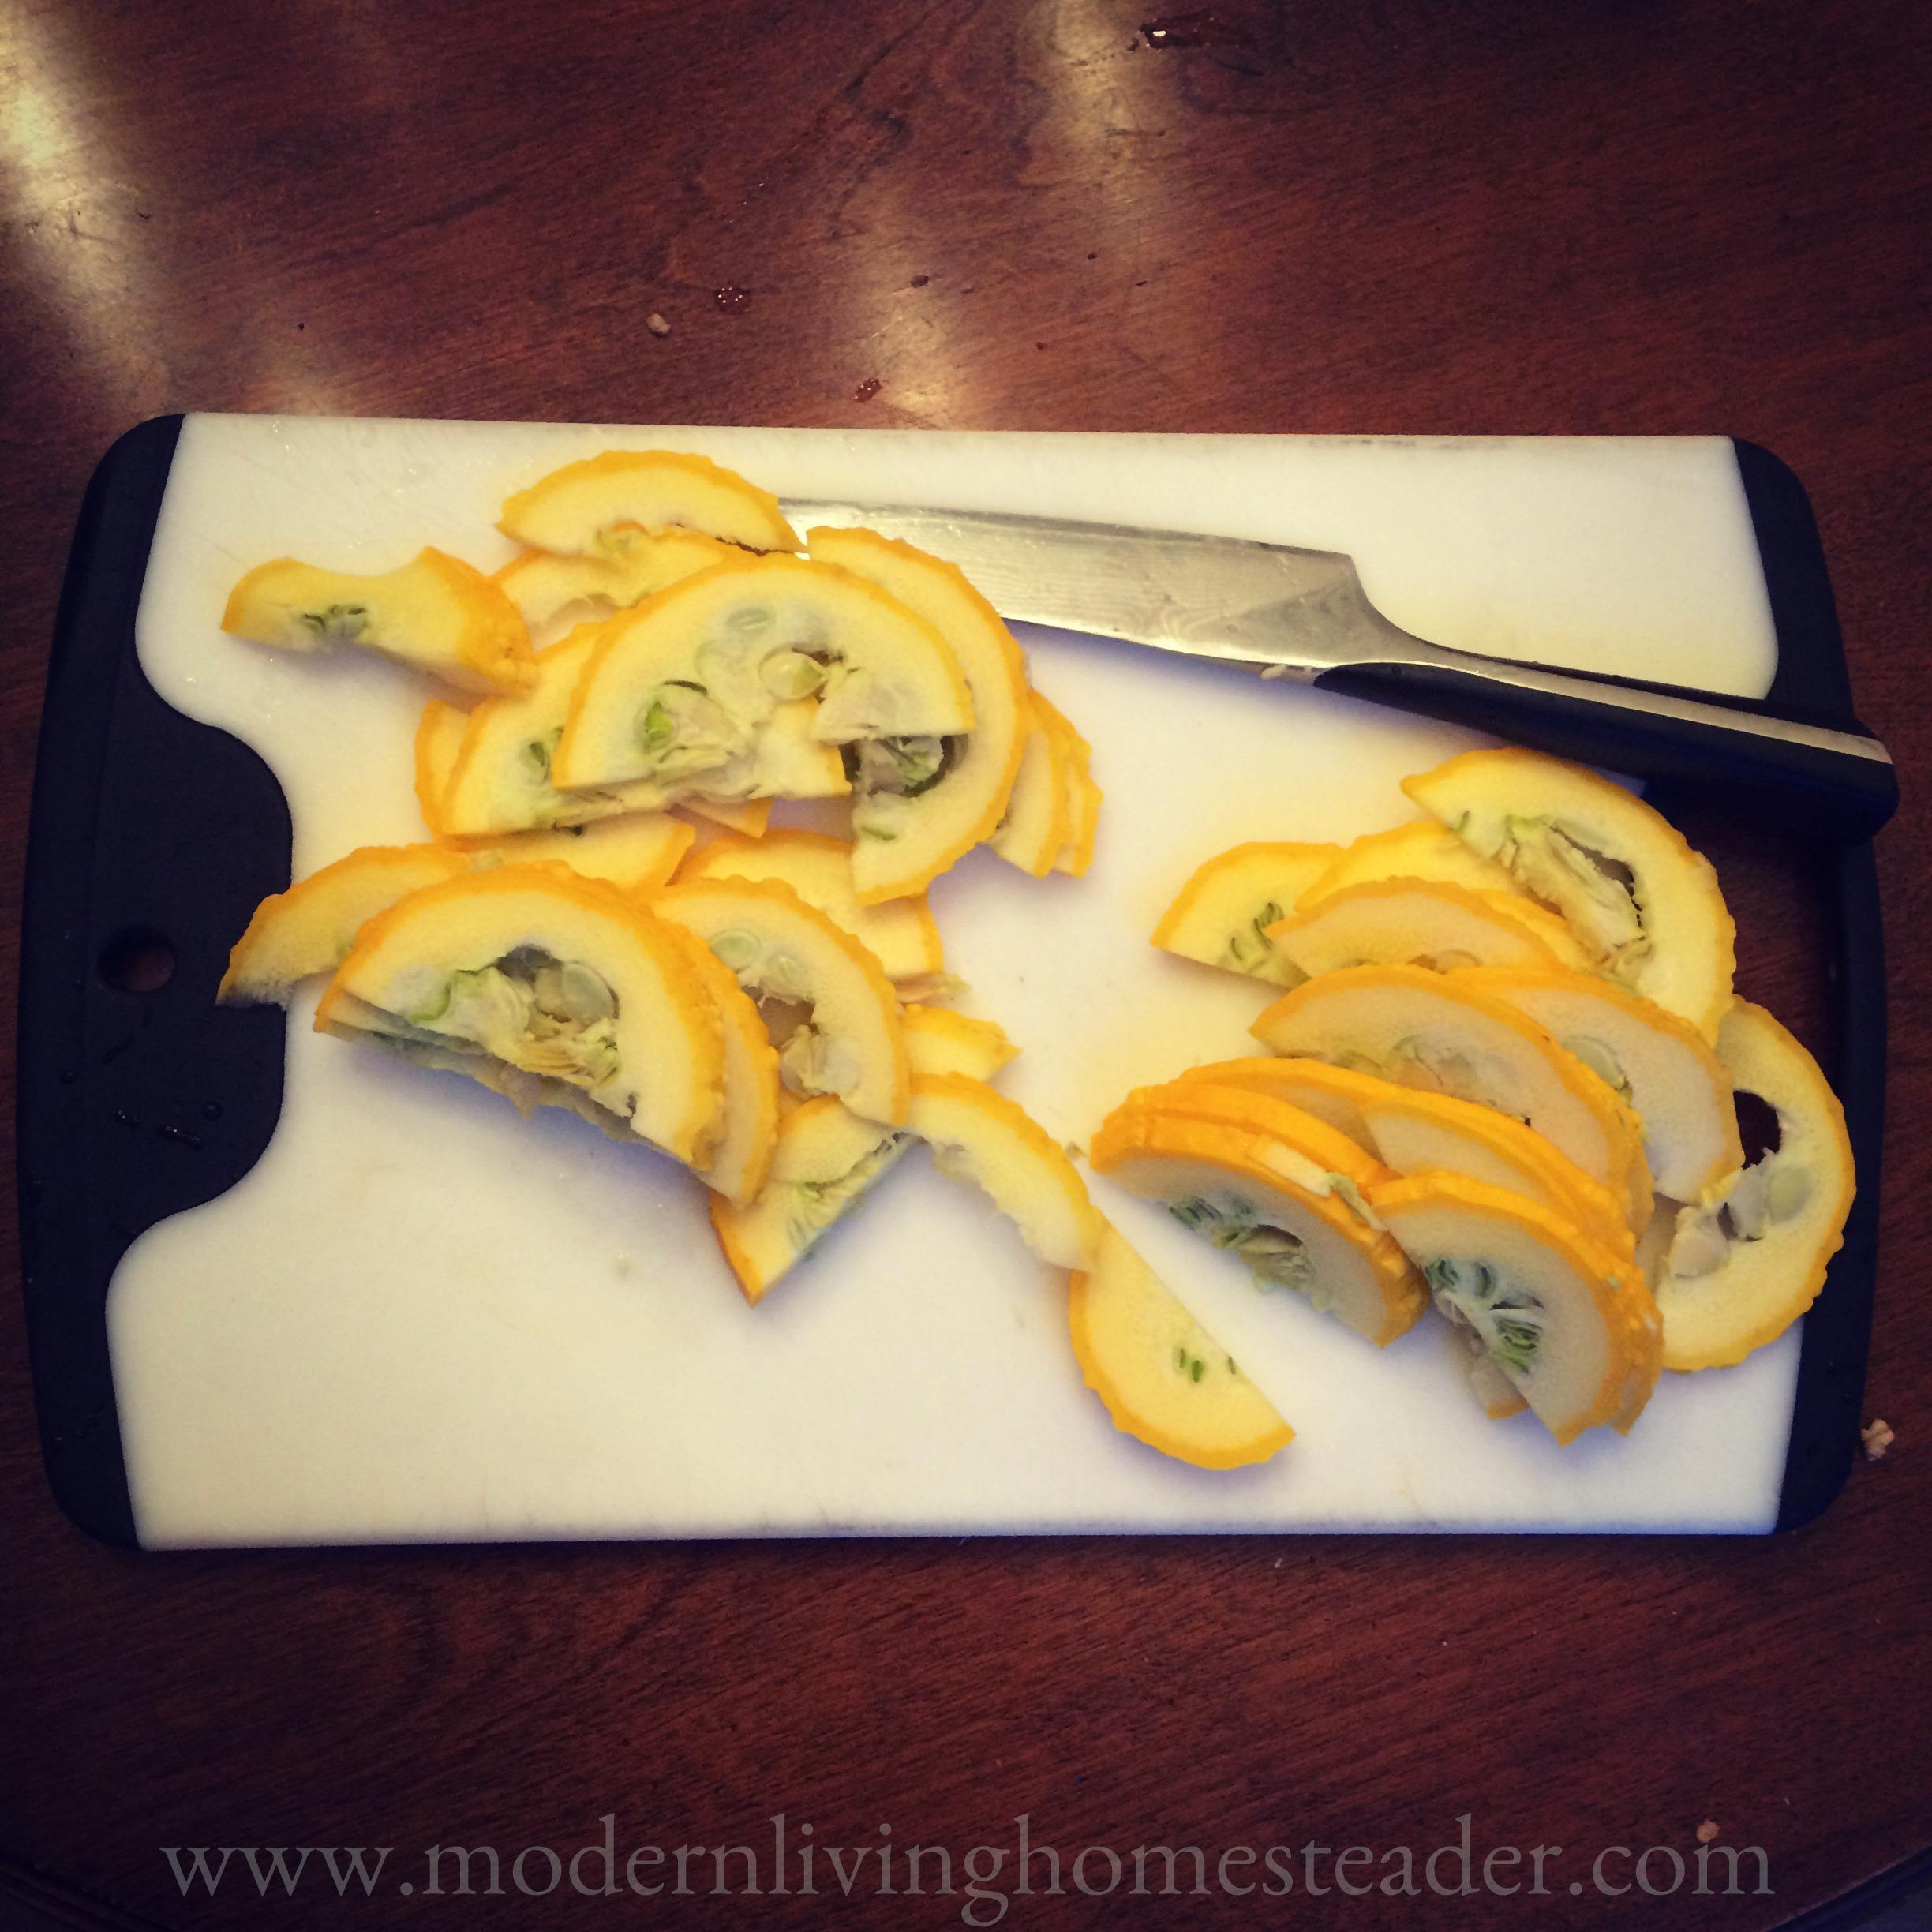 An abundance of summer squash requires creativity and focus! Here's a simple, comforting recipe you can enjoy at breakfast, lunch or dinner! www.modernlivinghomesteader.com